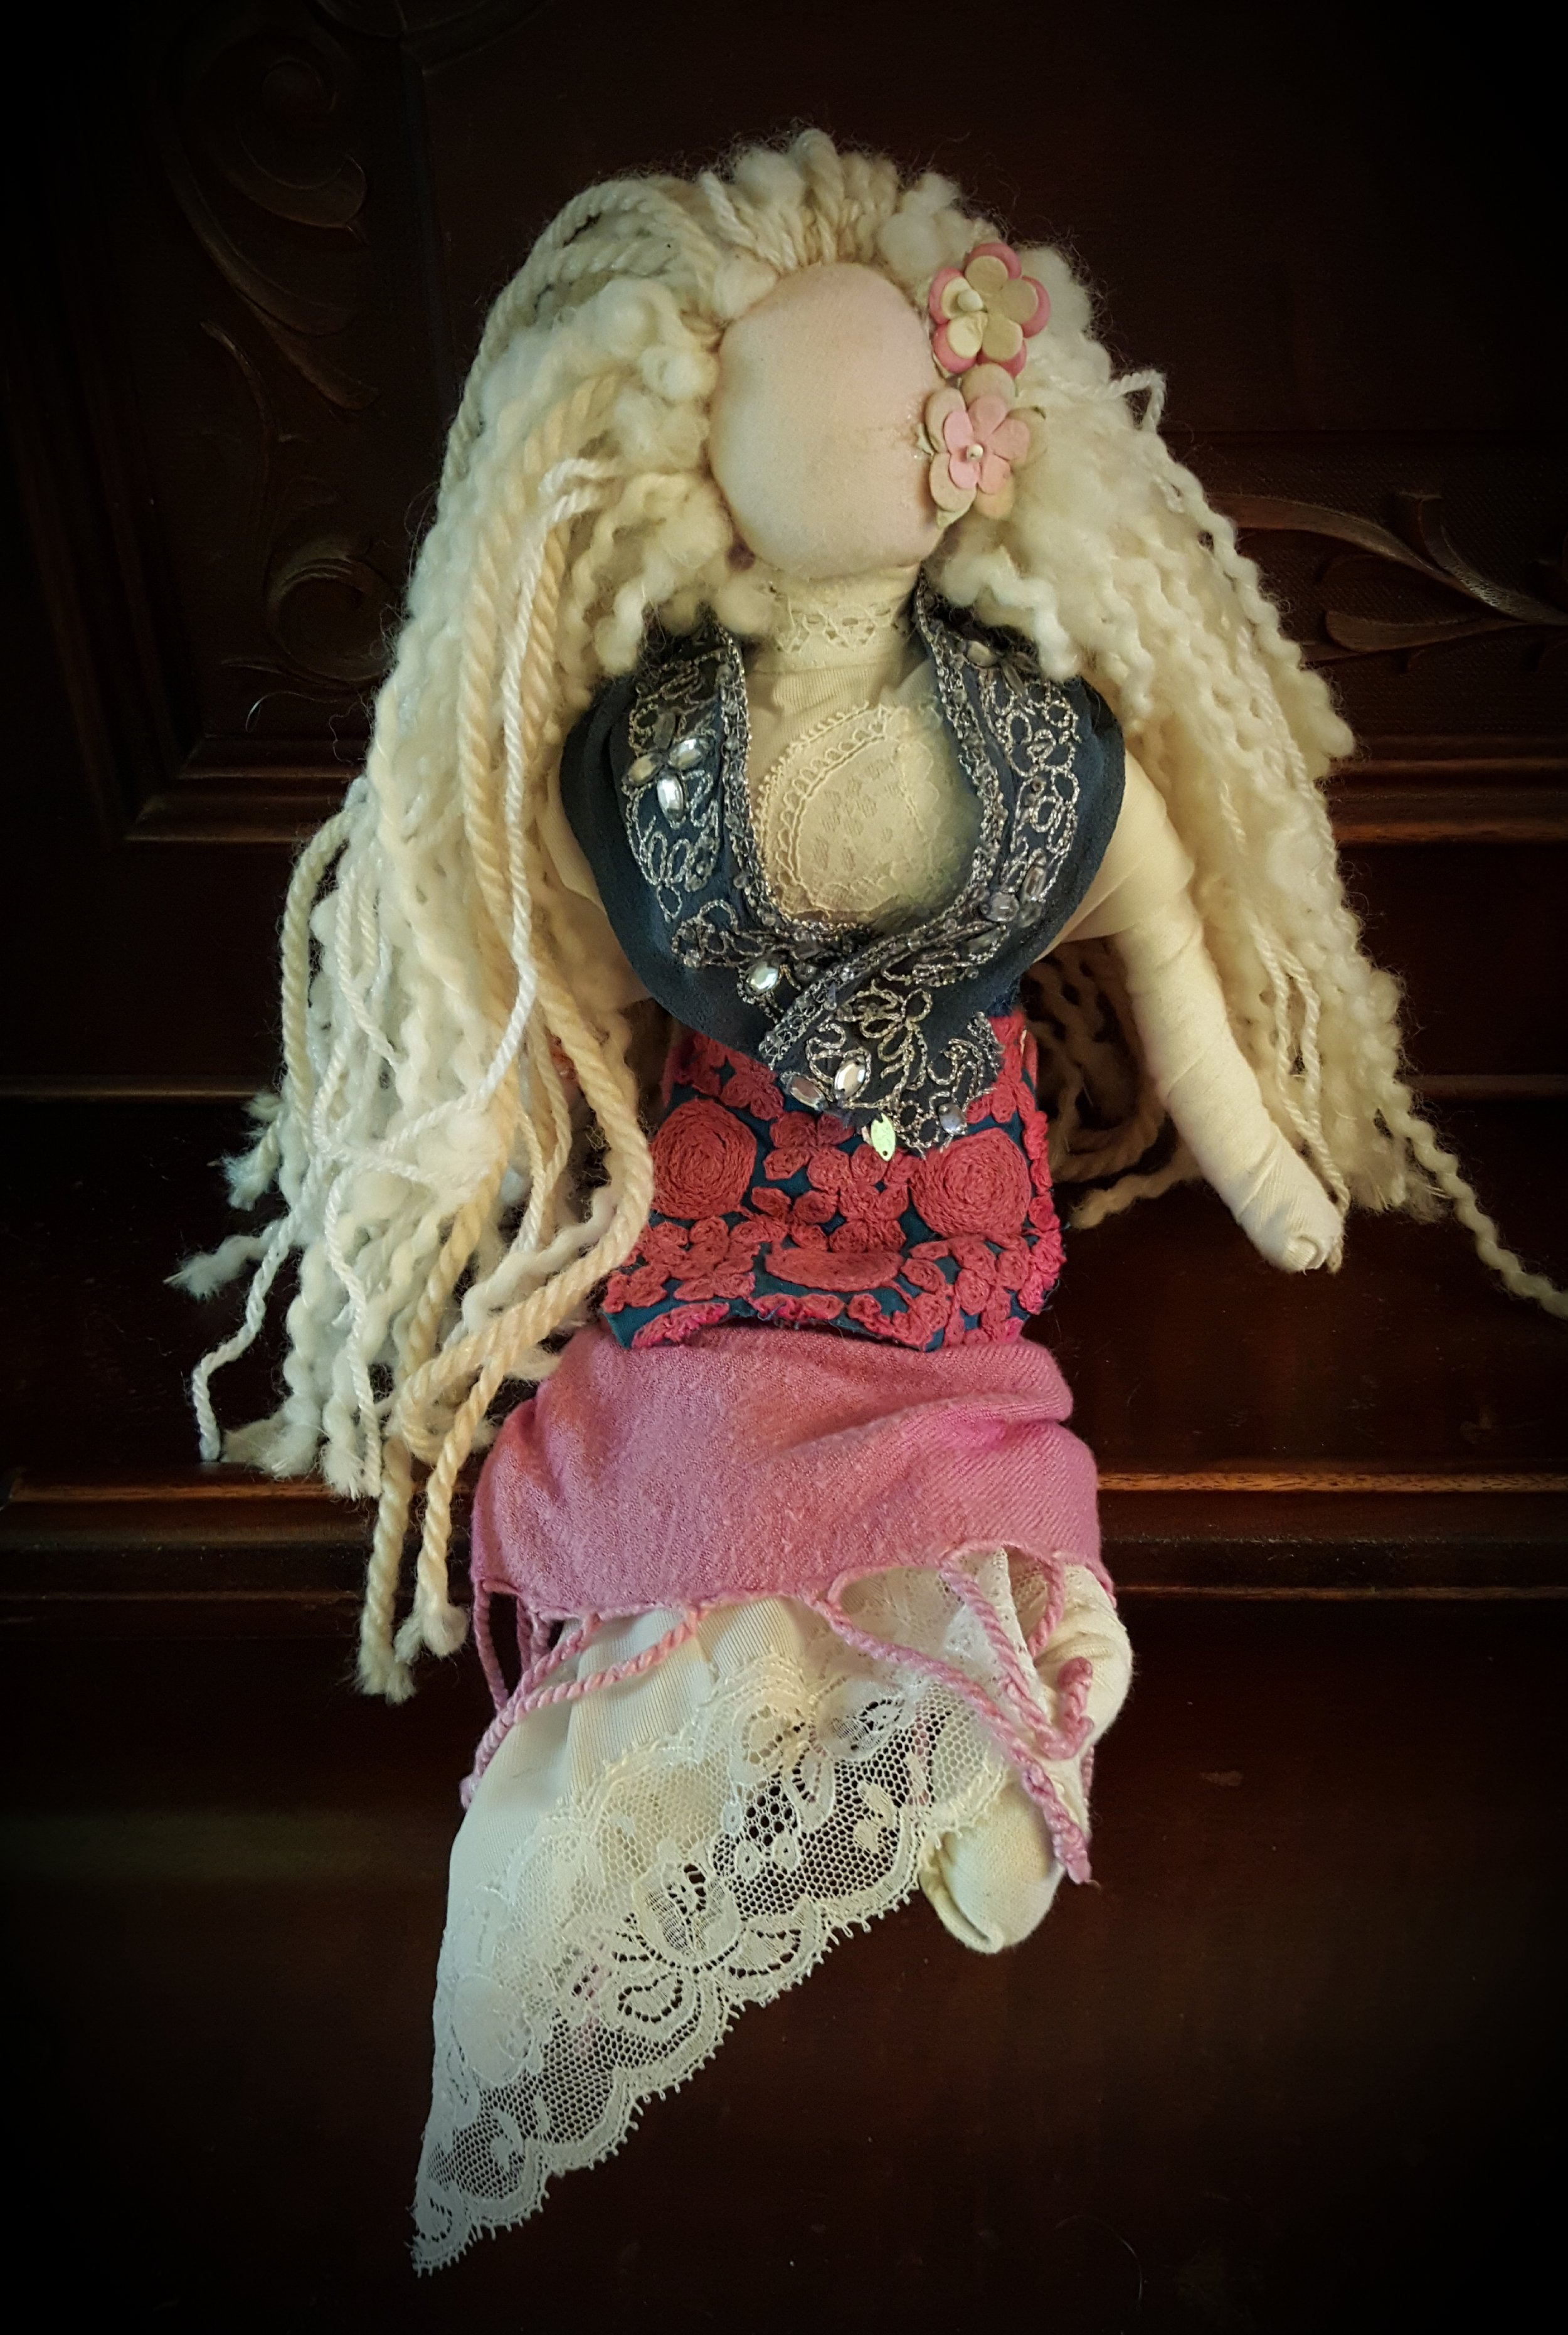 For Kathy - I made this doll for my friend Kathryn Aitken in 2011. Kathy is an incredible women who's been instrumental in co-creating the Transition NDG network. She inspires me with her dedication to creating community resilience and her gift of bringing people together.